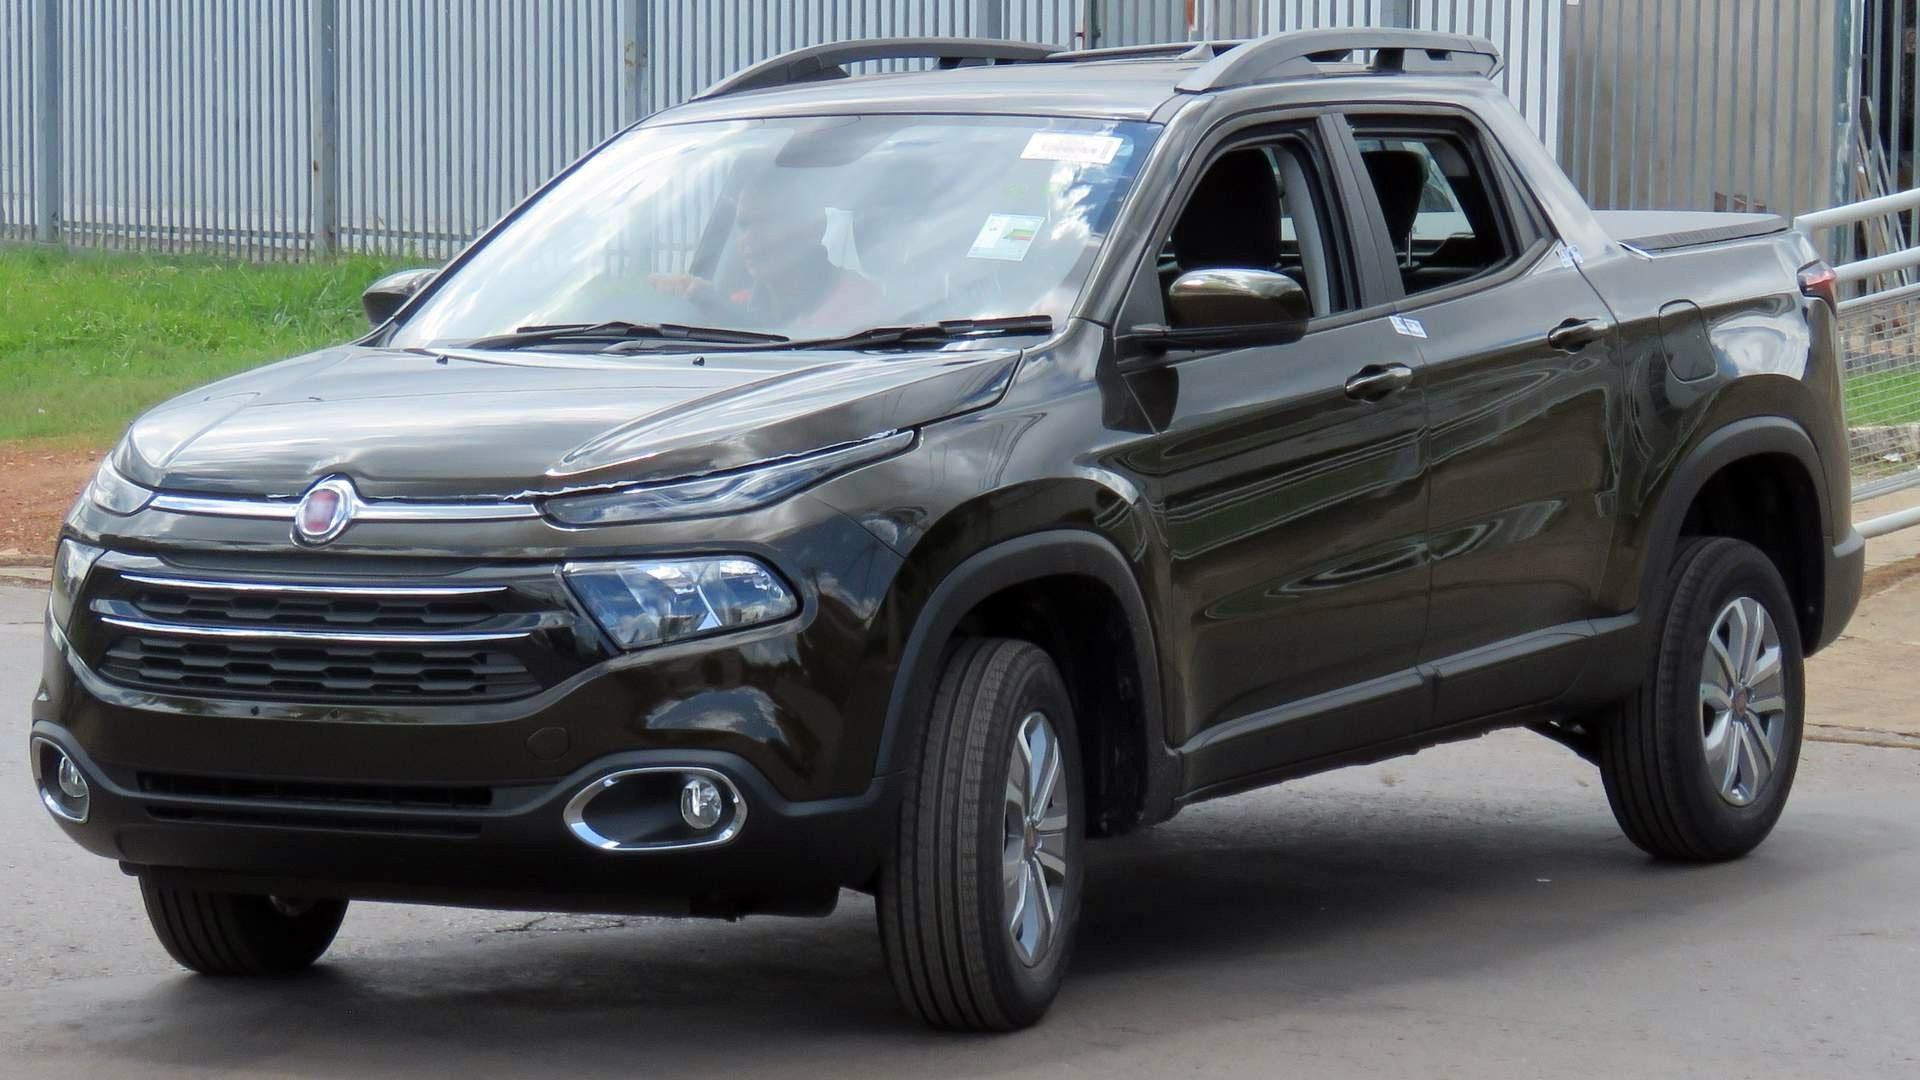 Fiat Toro 2018 USA Price List HD